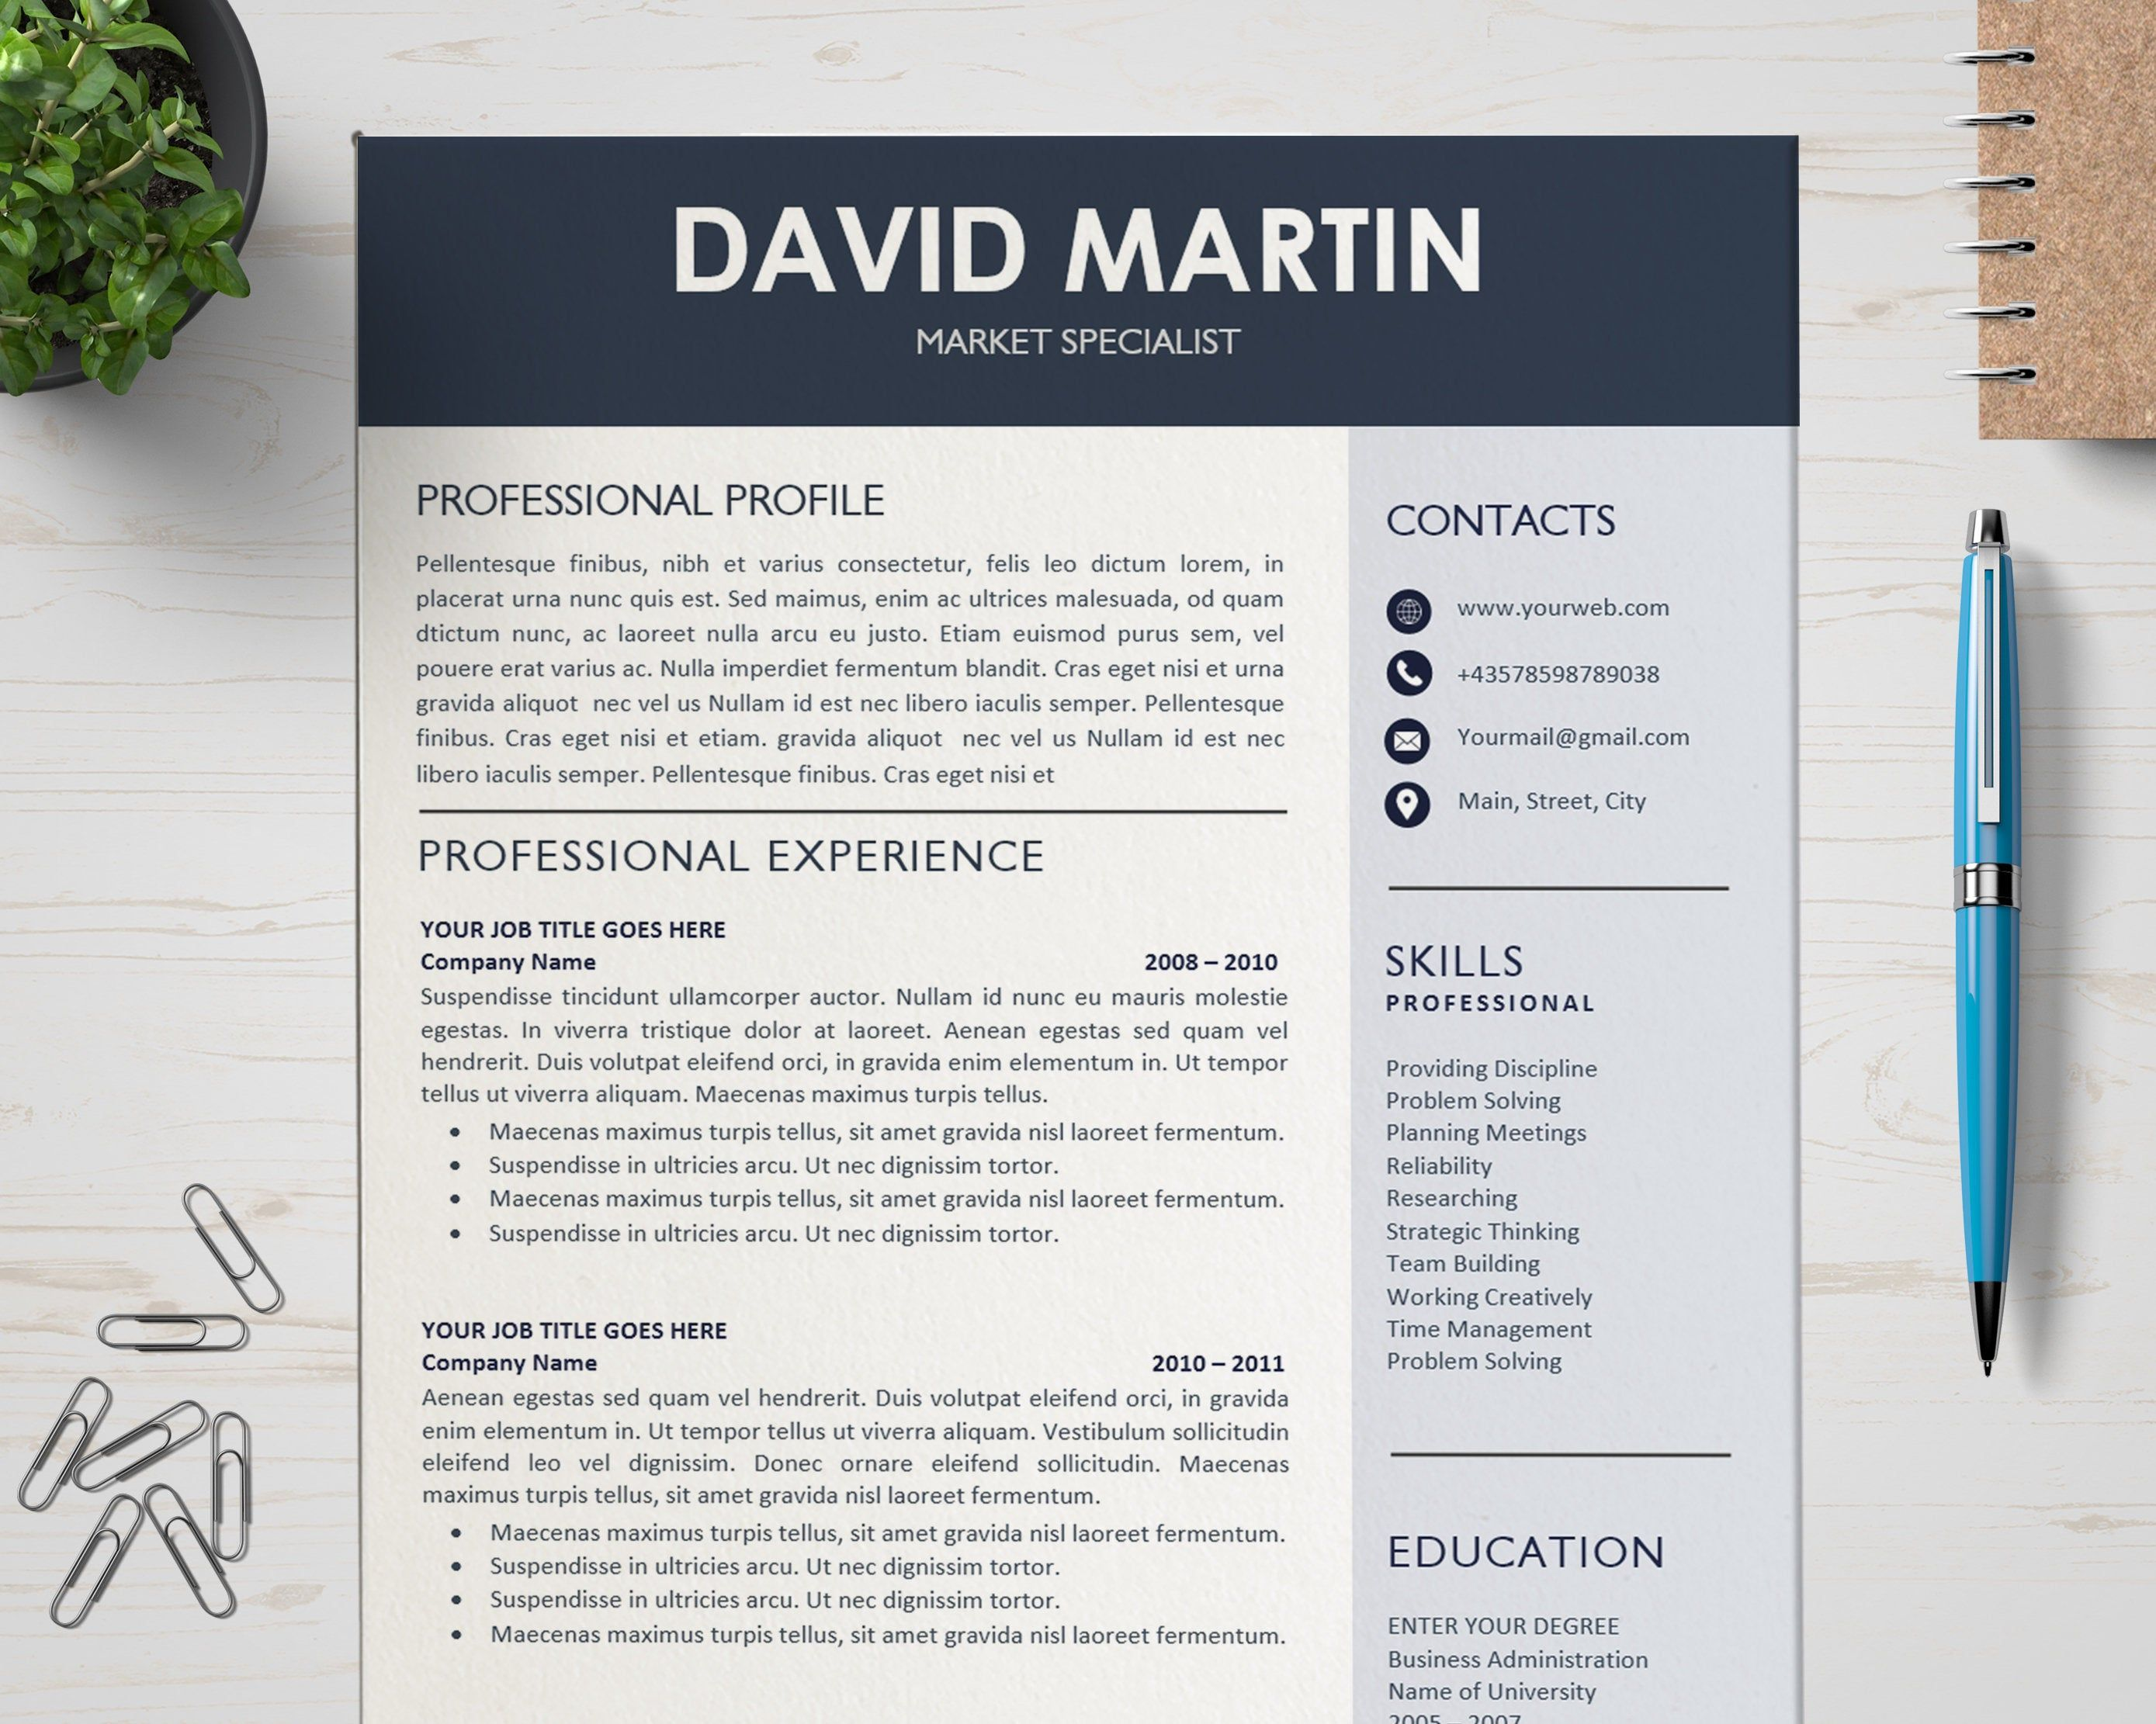 Creative resume template cv design layout for mac and pc